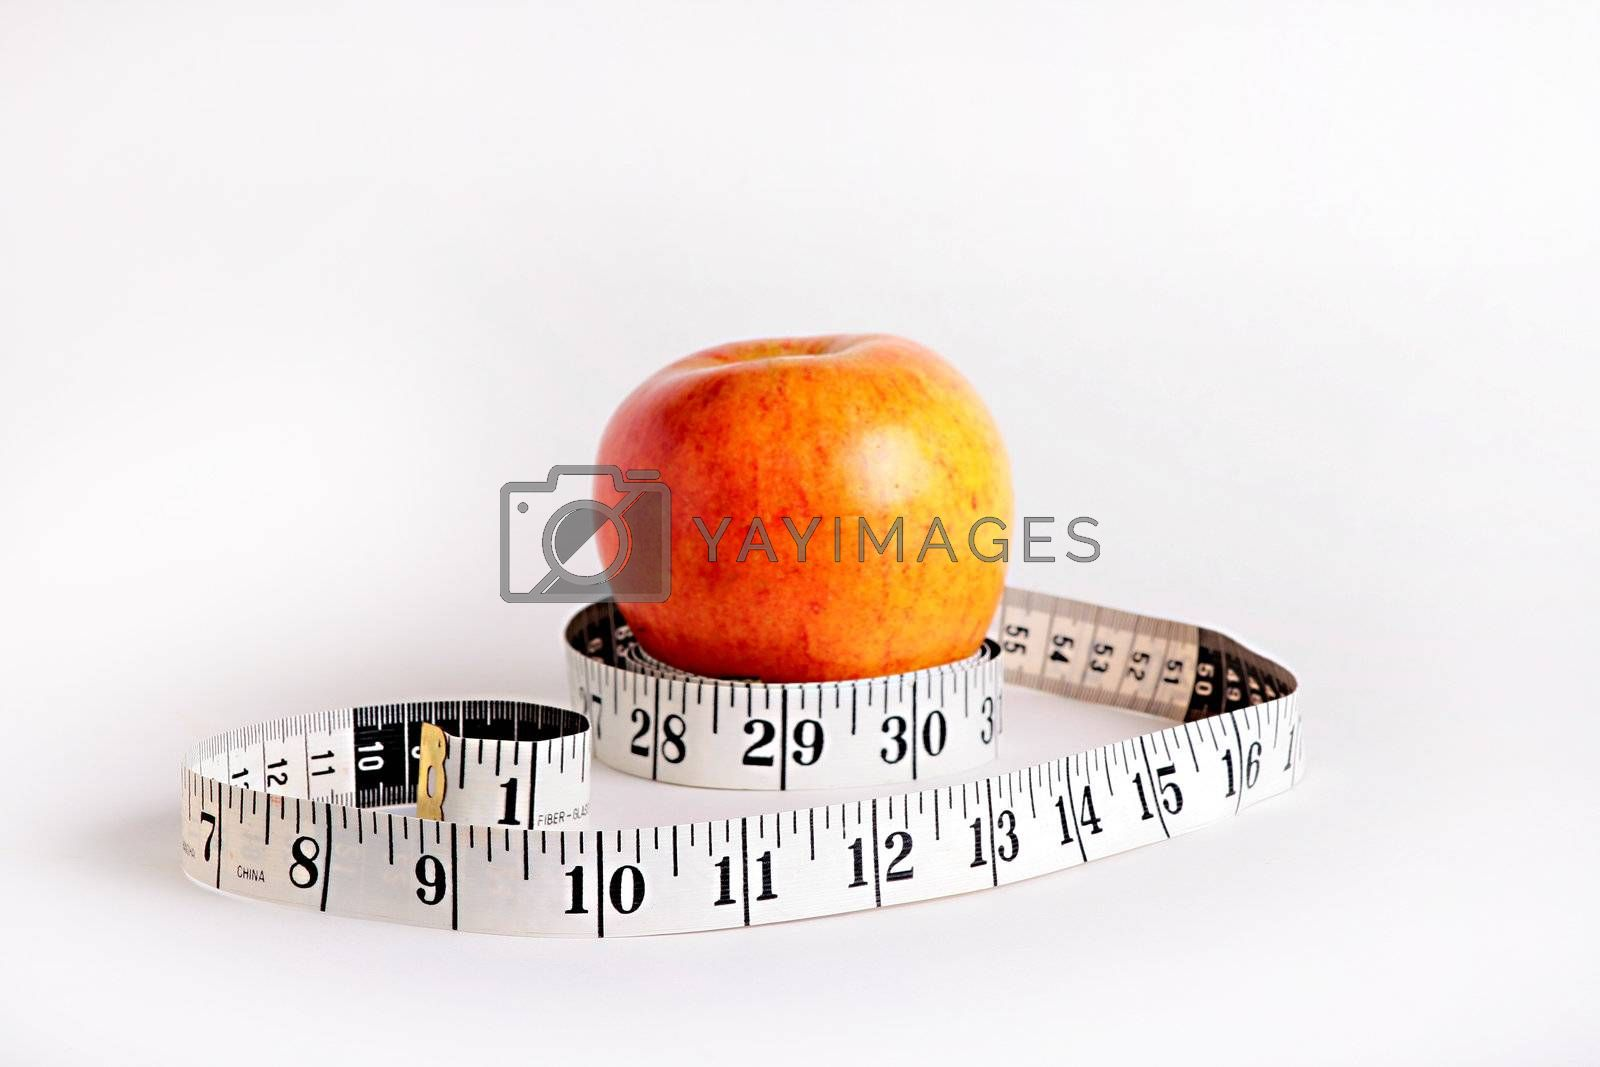 Tape measure and an apple characterise diet possibility.